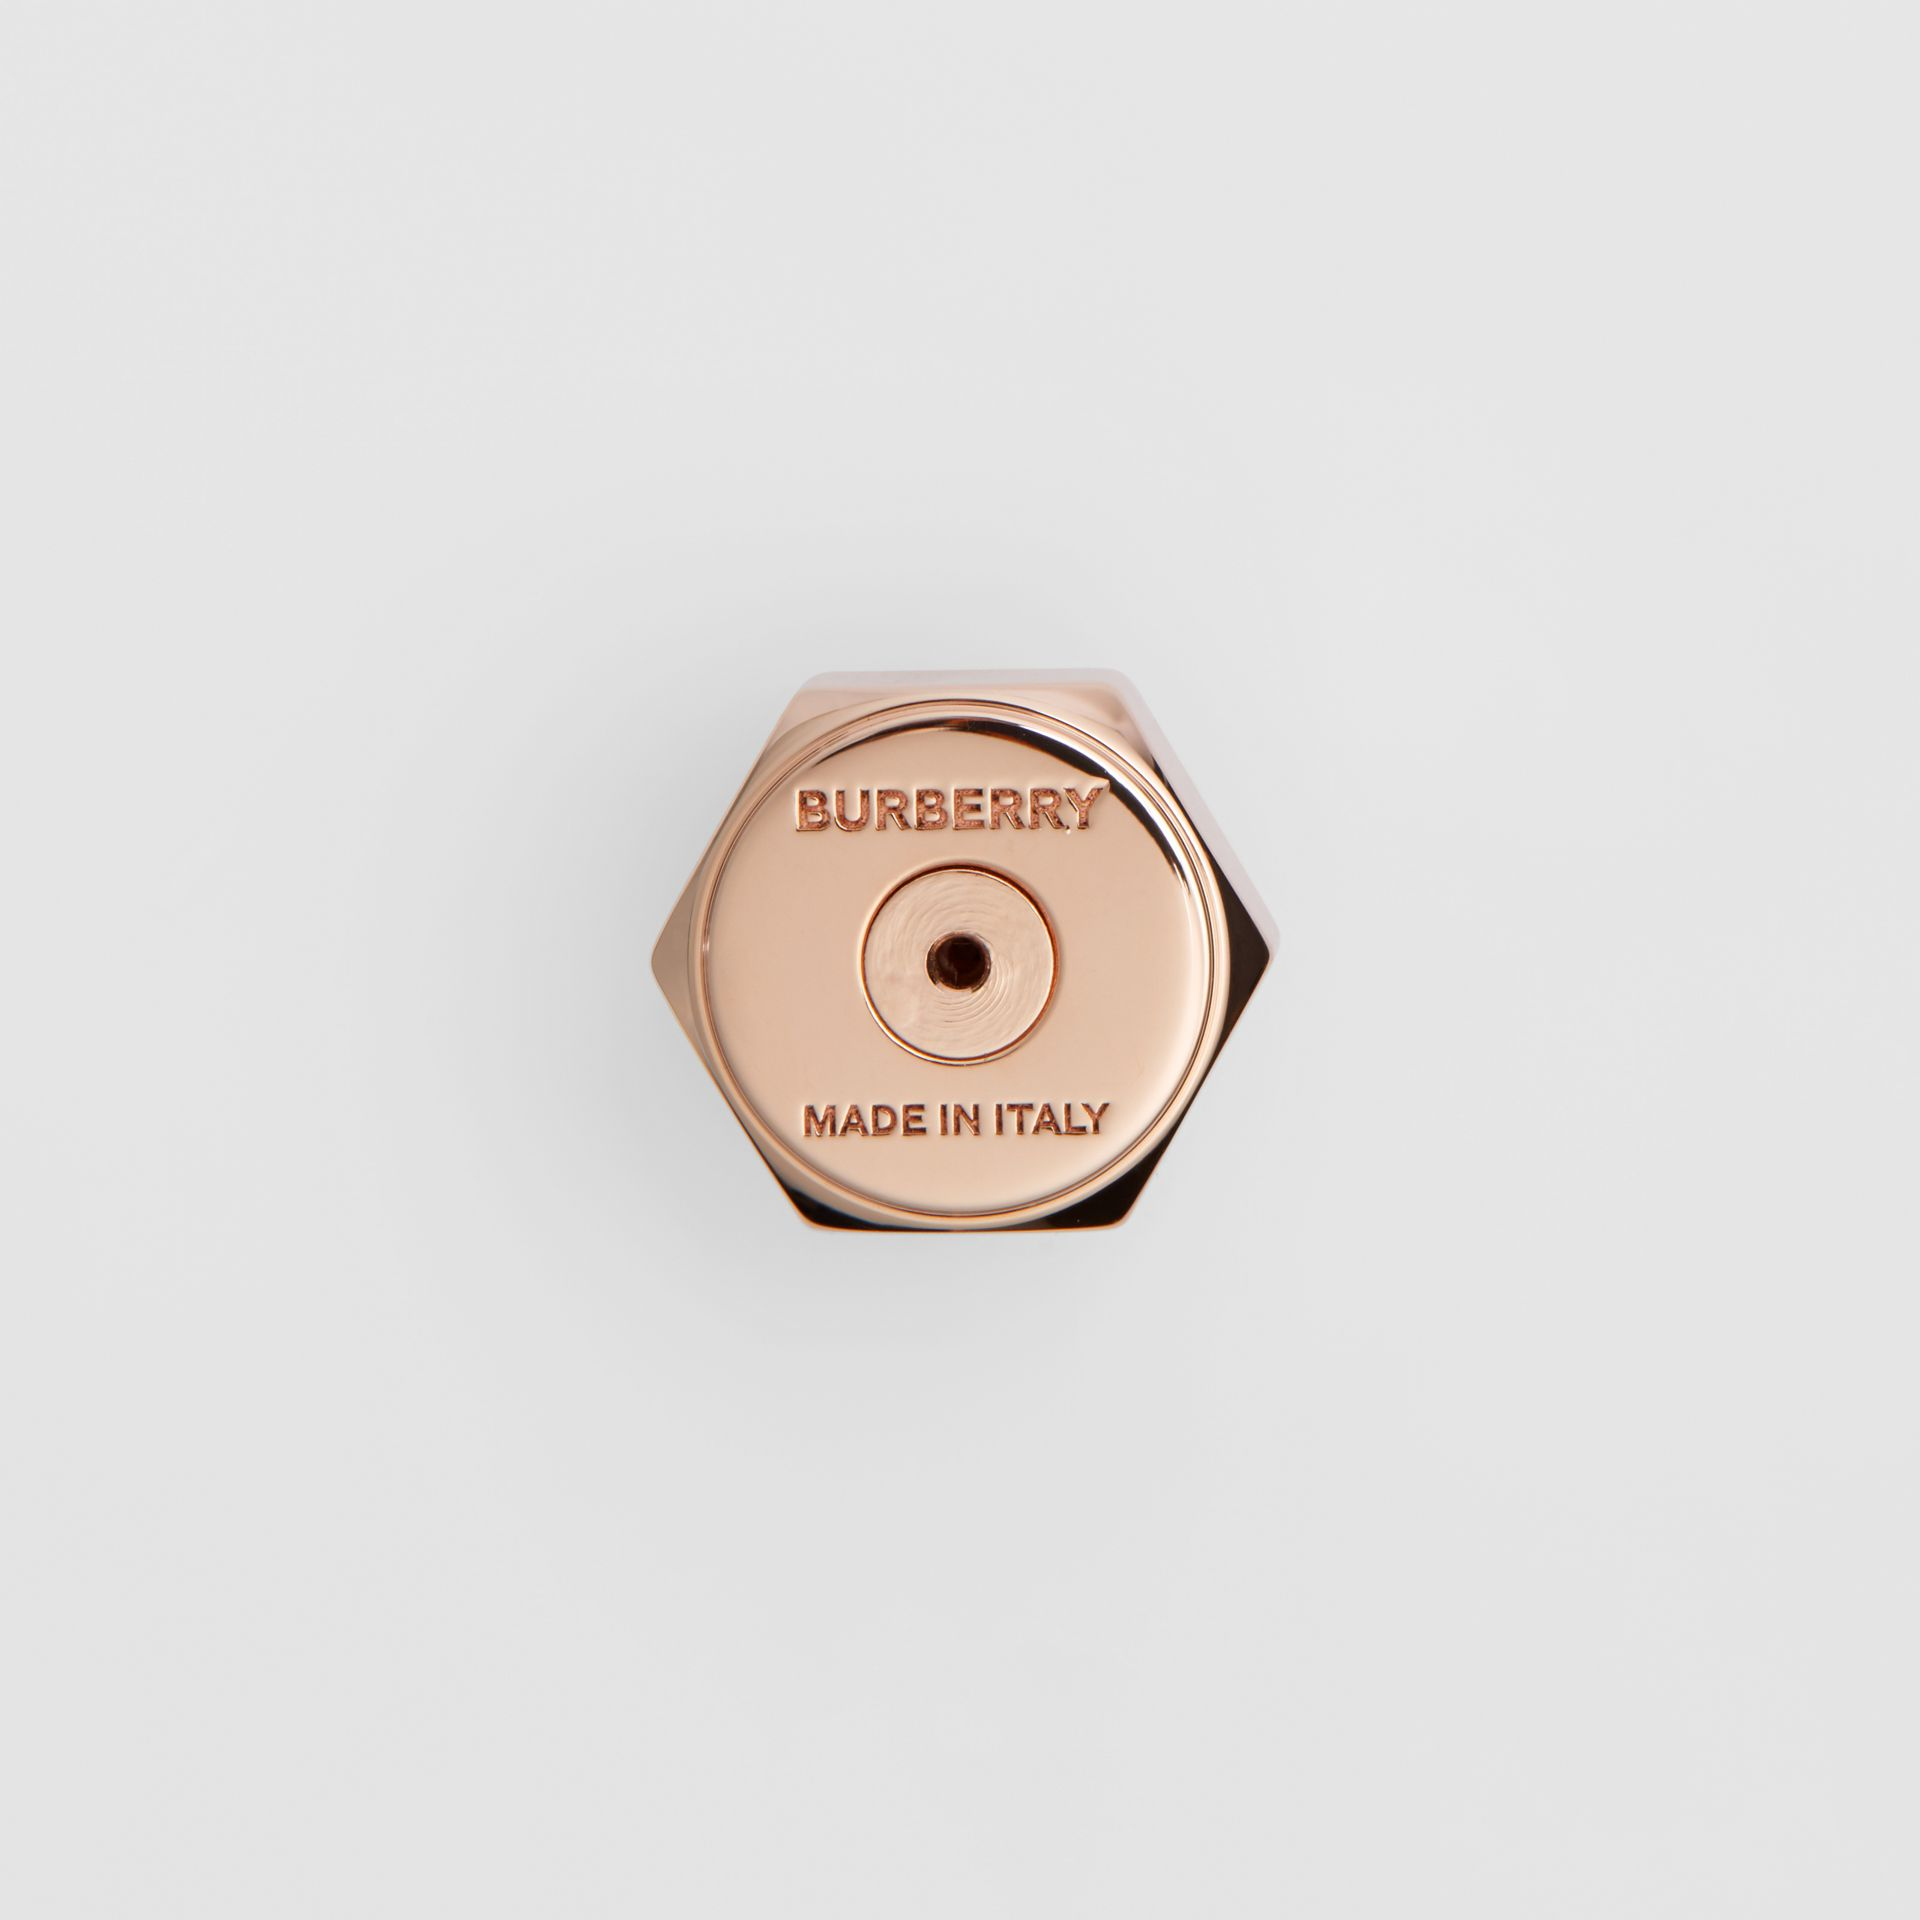 Crystal Charm Rose Gold-plated Nut and Bolt Earrings in Gold/palladium - Women | Burberry - gallery image 1